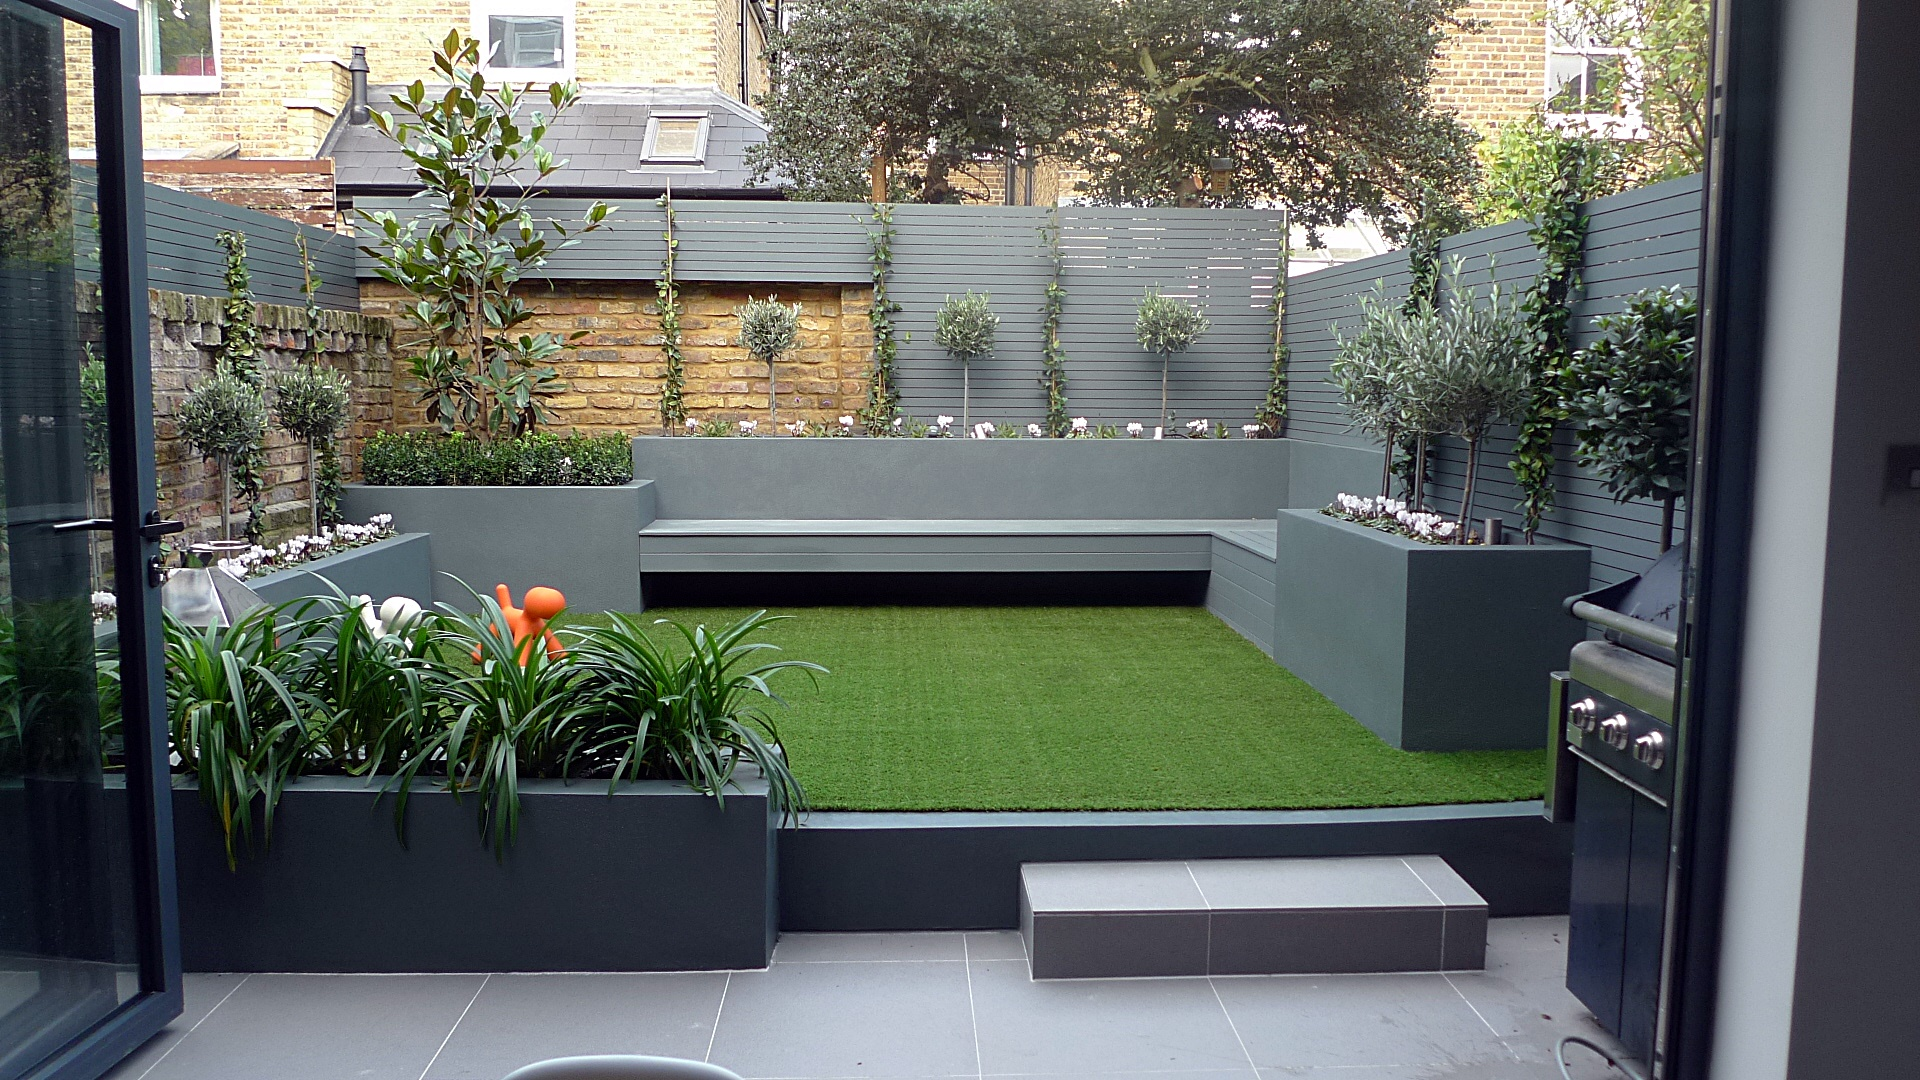 Balham london garden design - Garden ideas london ...